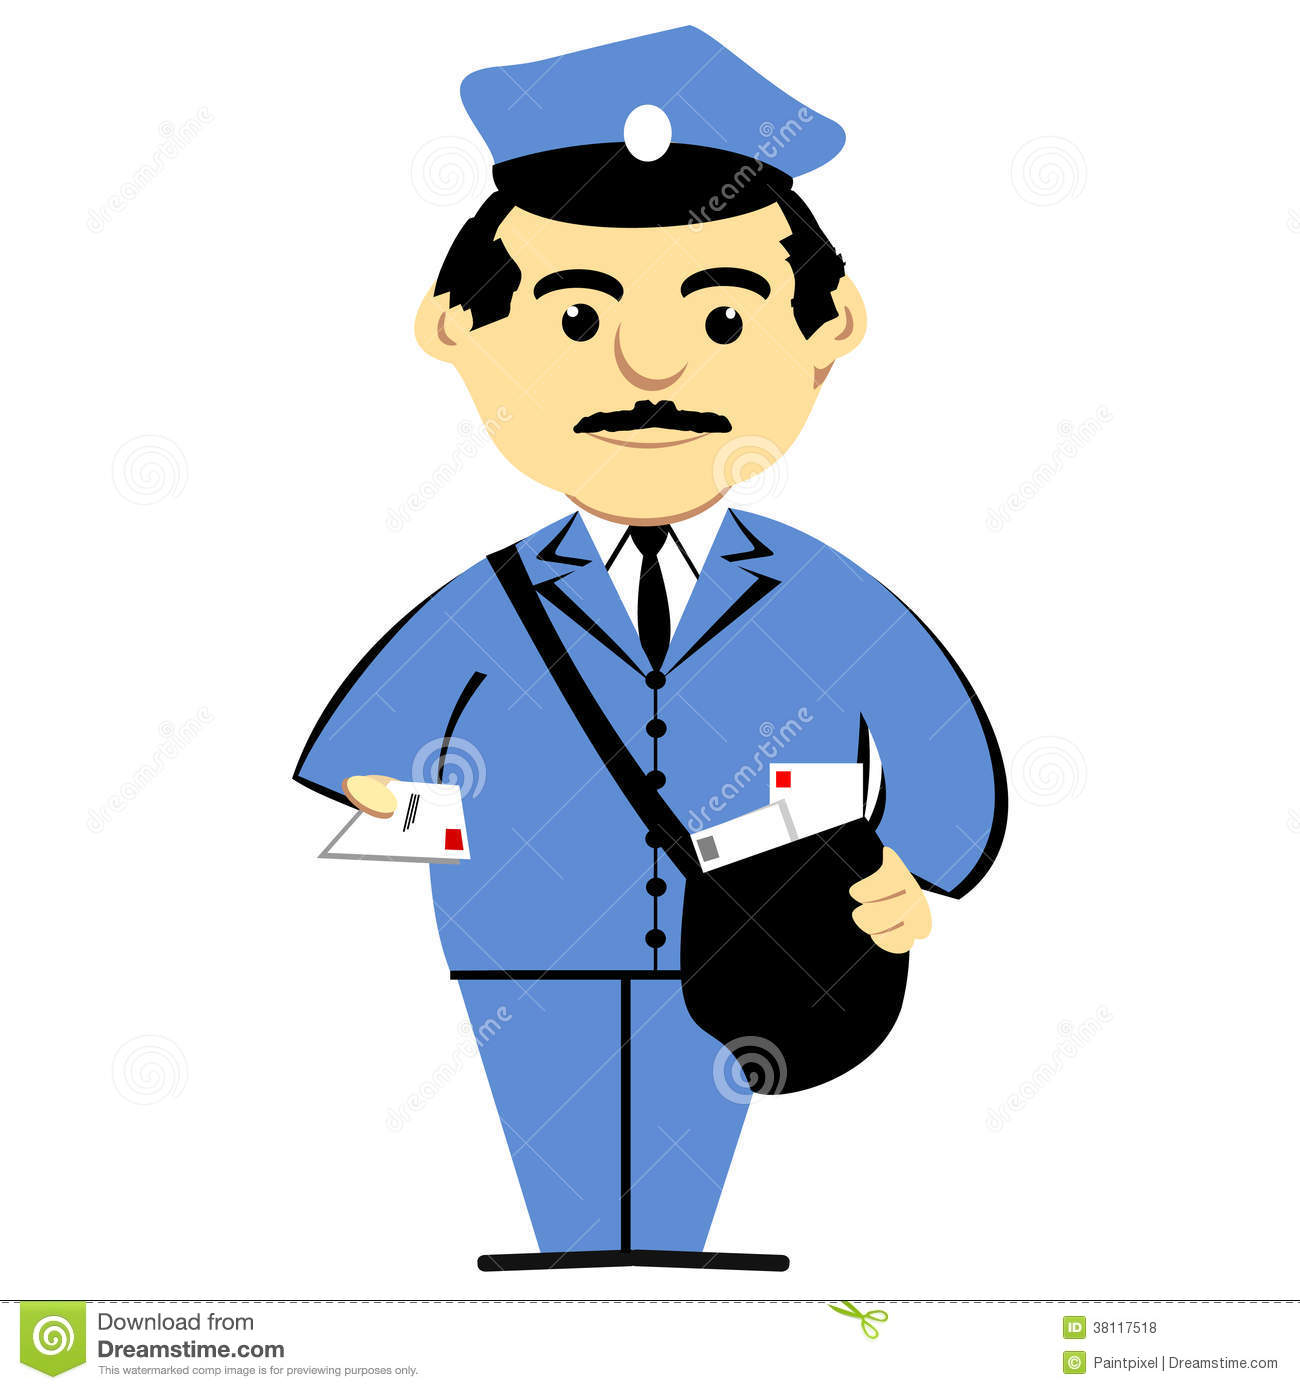 Postman With Mailbag Royalty Free Stock Photos   Image  38117518